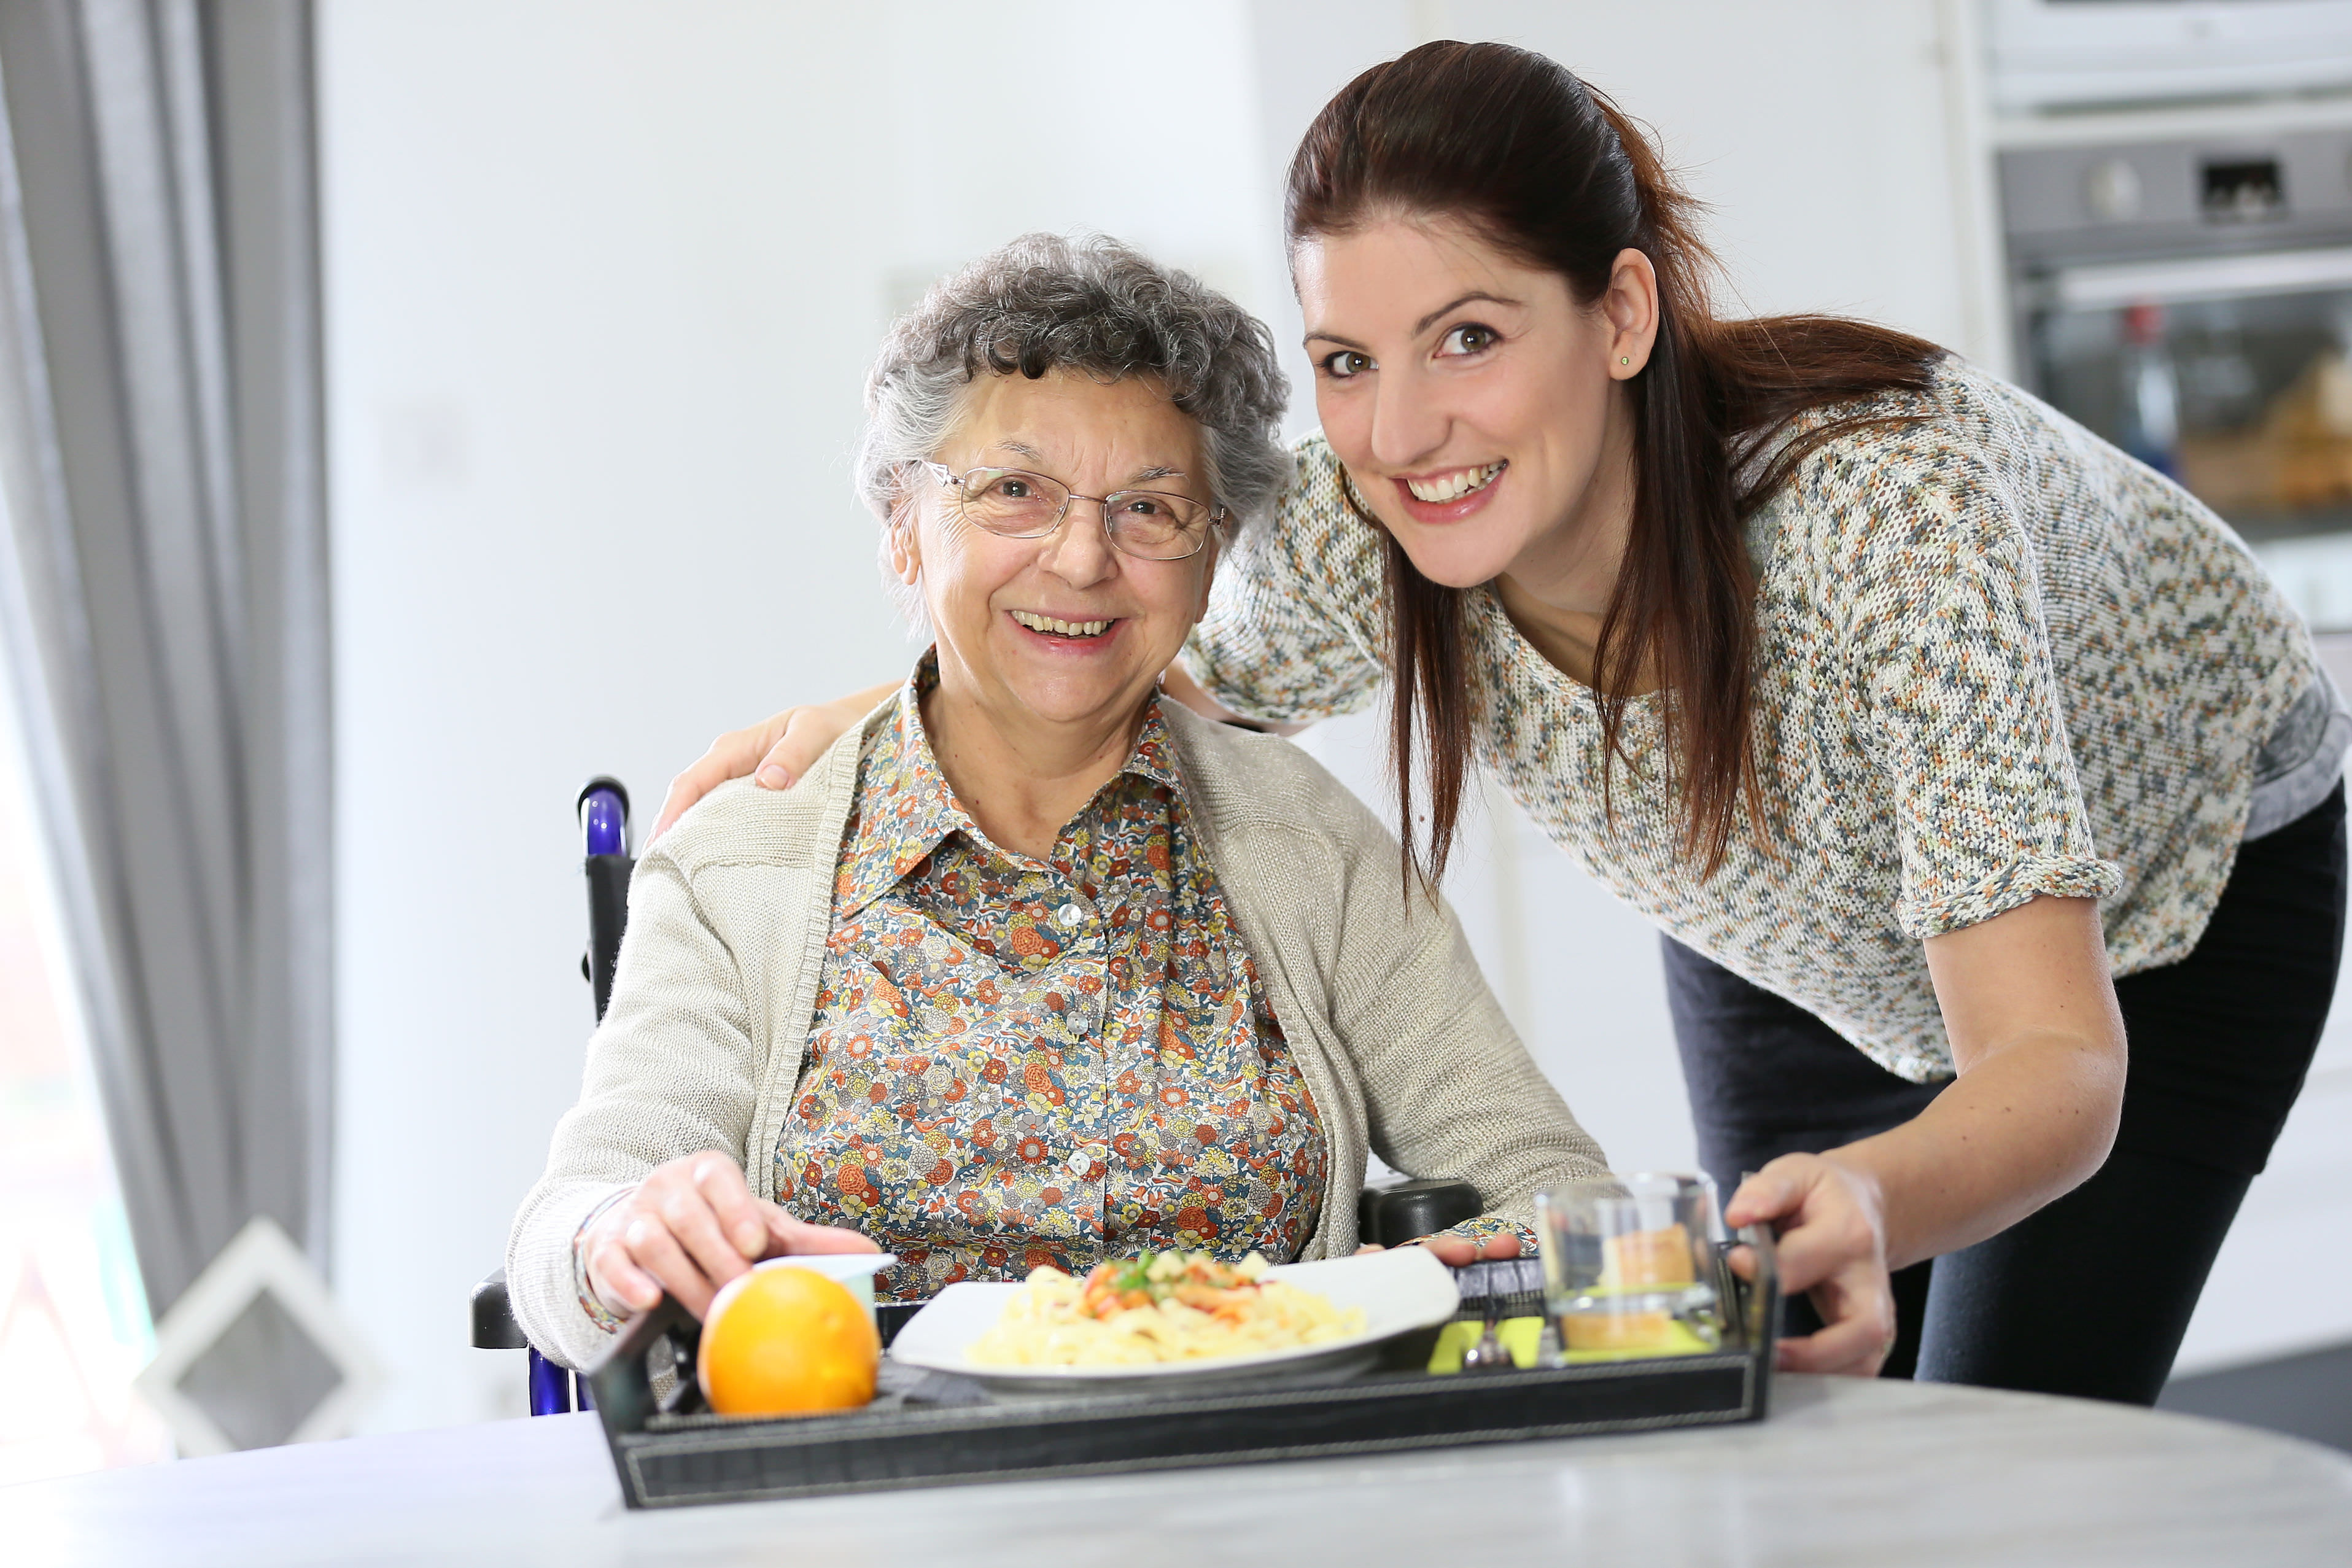 aged care worker serving a meal